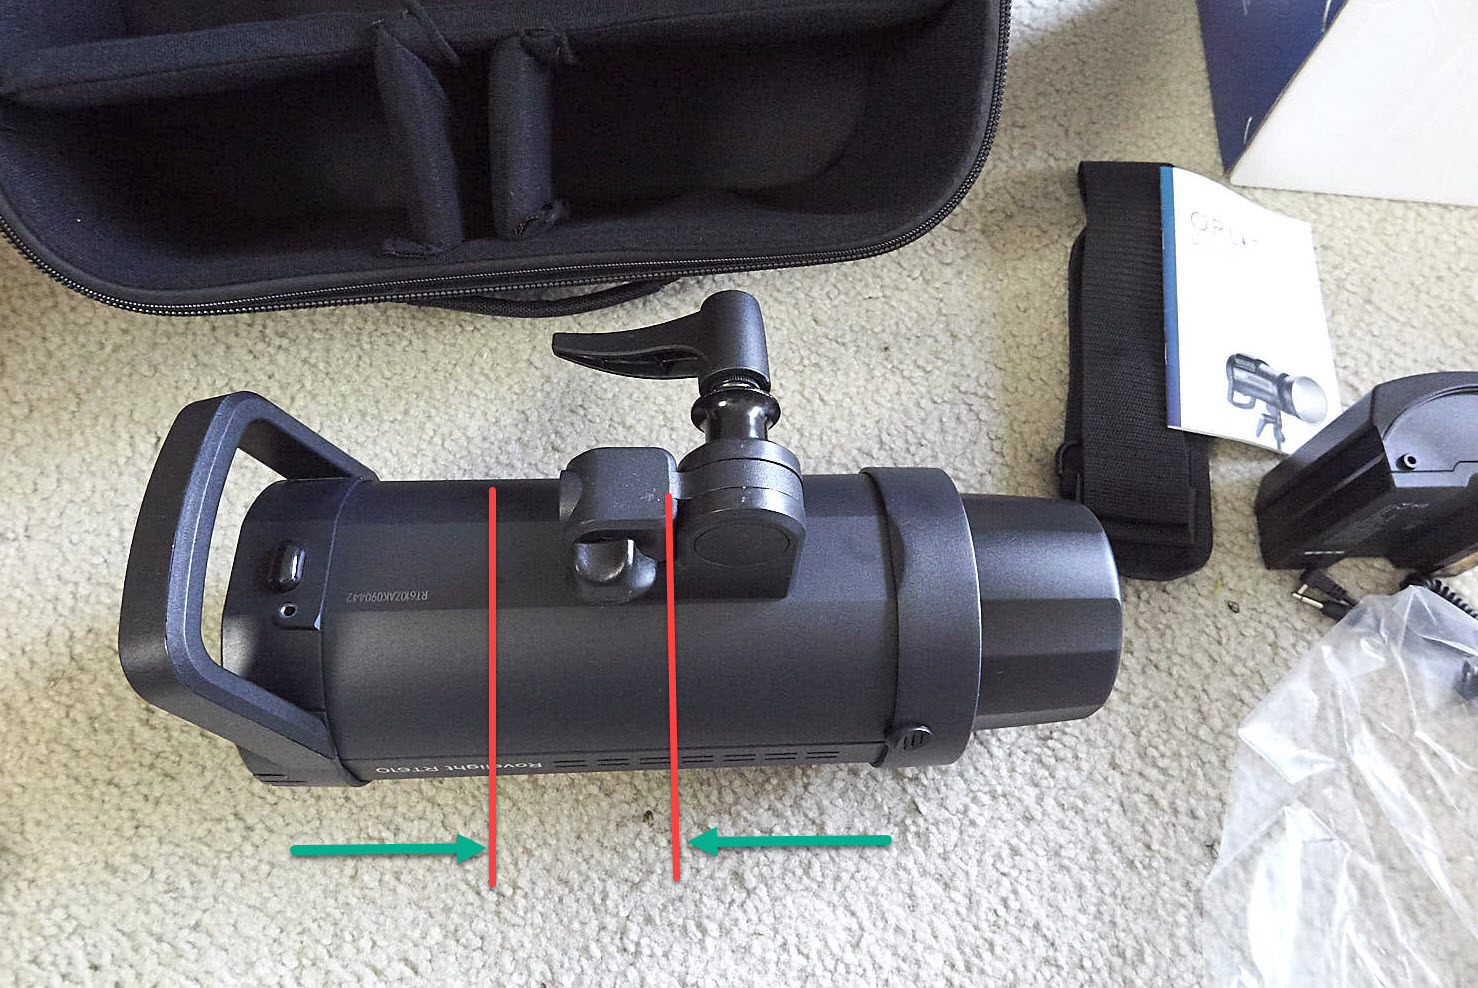 Poor design? The mount to a standard 5x8 inch light stand stud is much shorter in depth than most typical monolights (Shown here is what I approximate other monolight mounts to be in length)